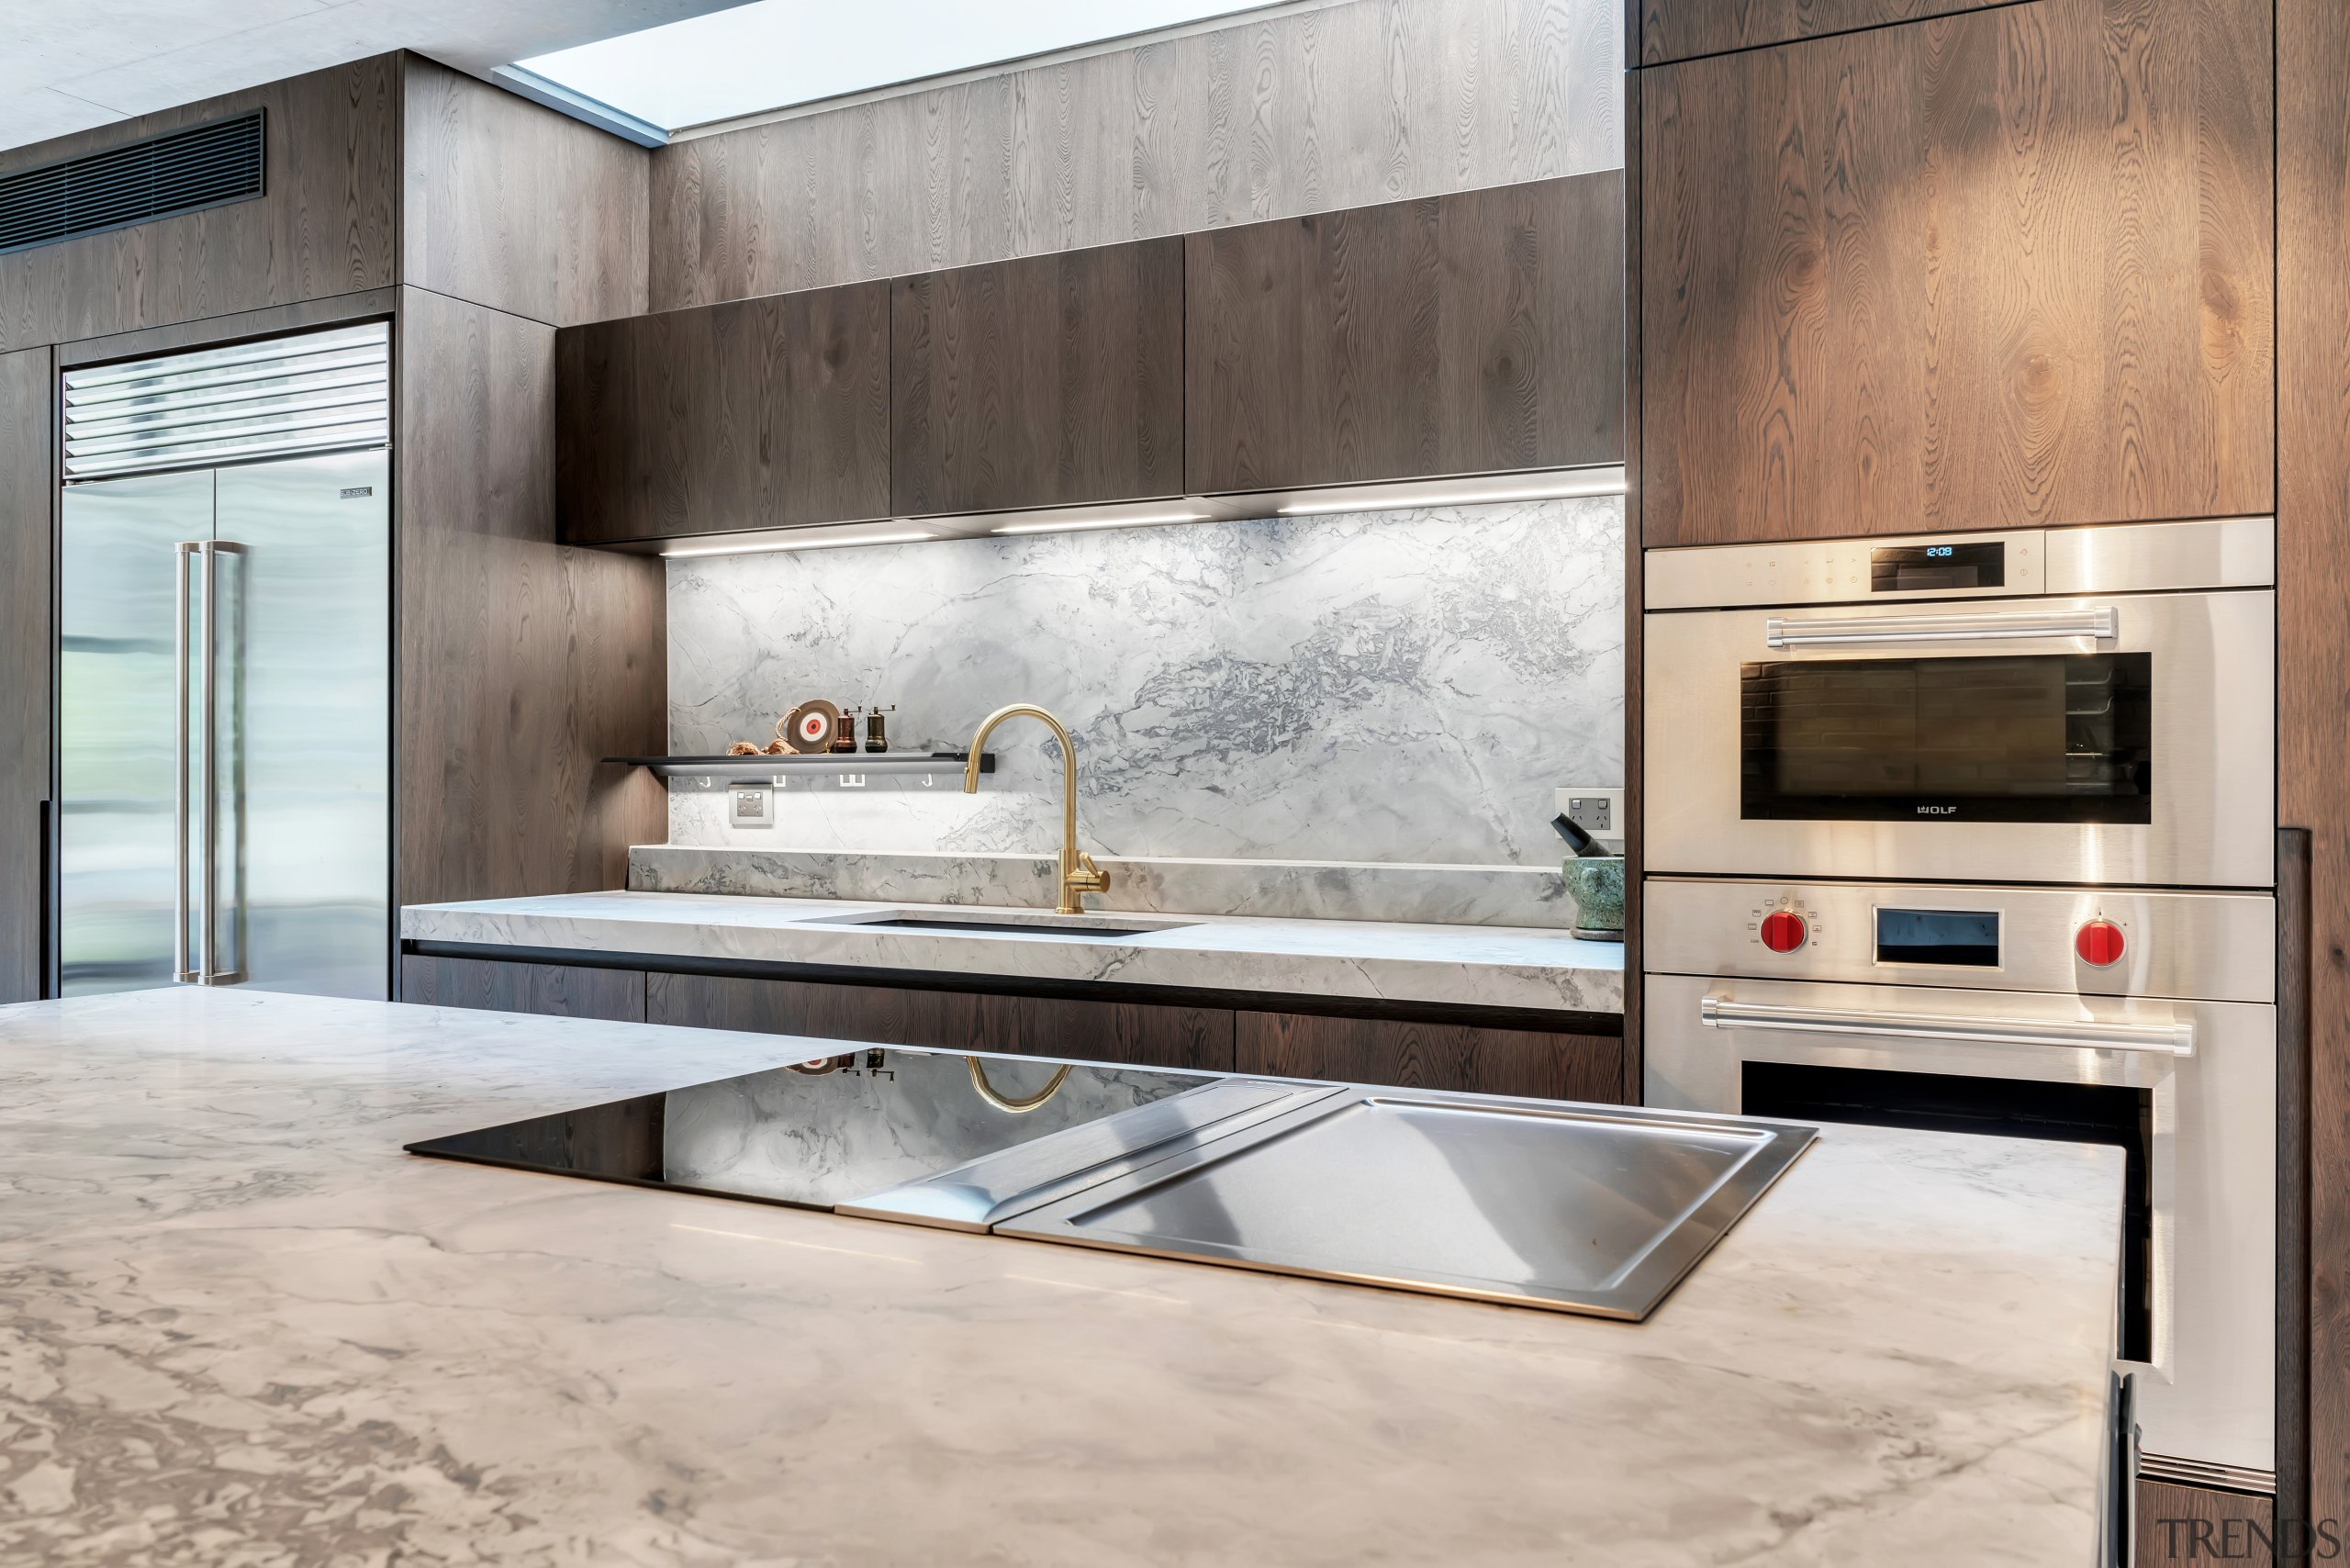 With recessed pulls, the refined cabinetry in this